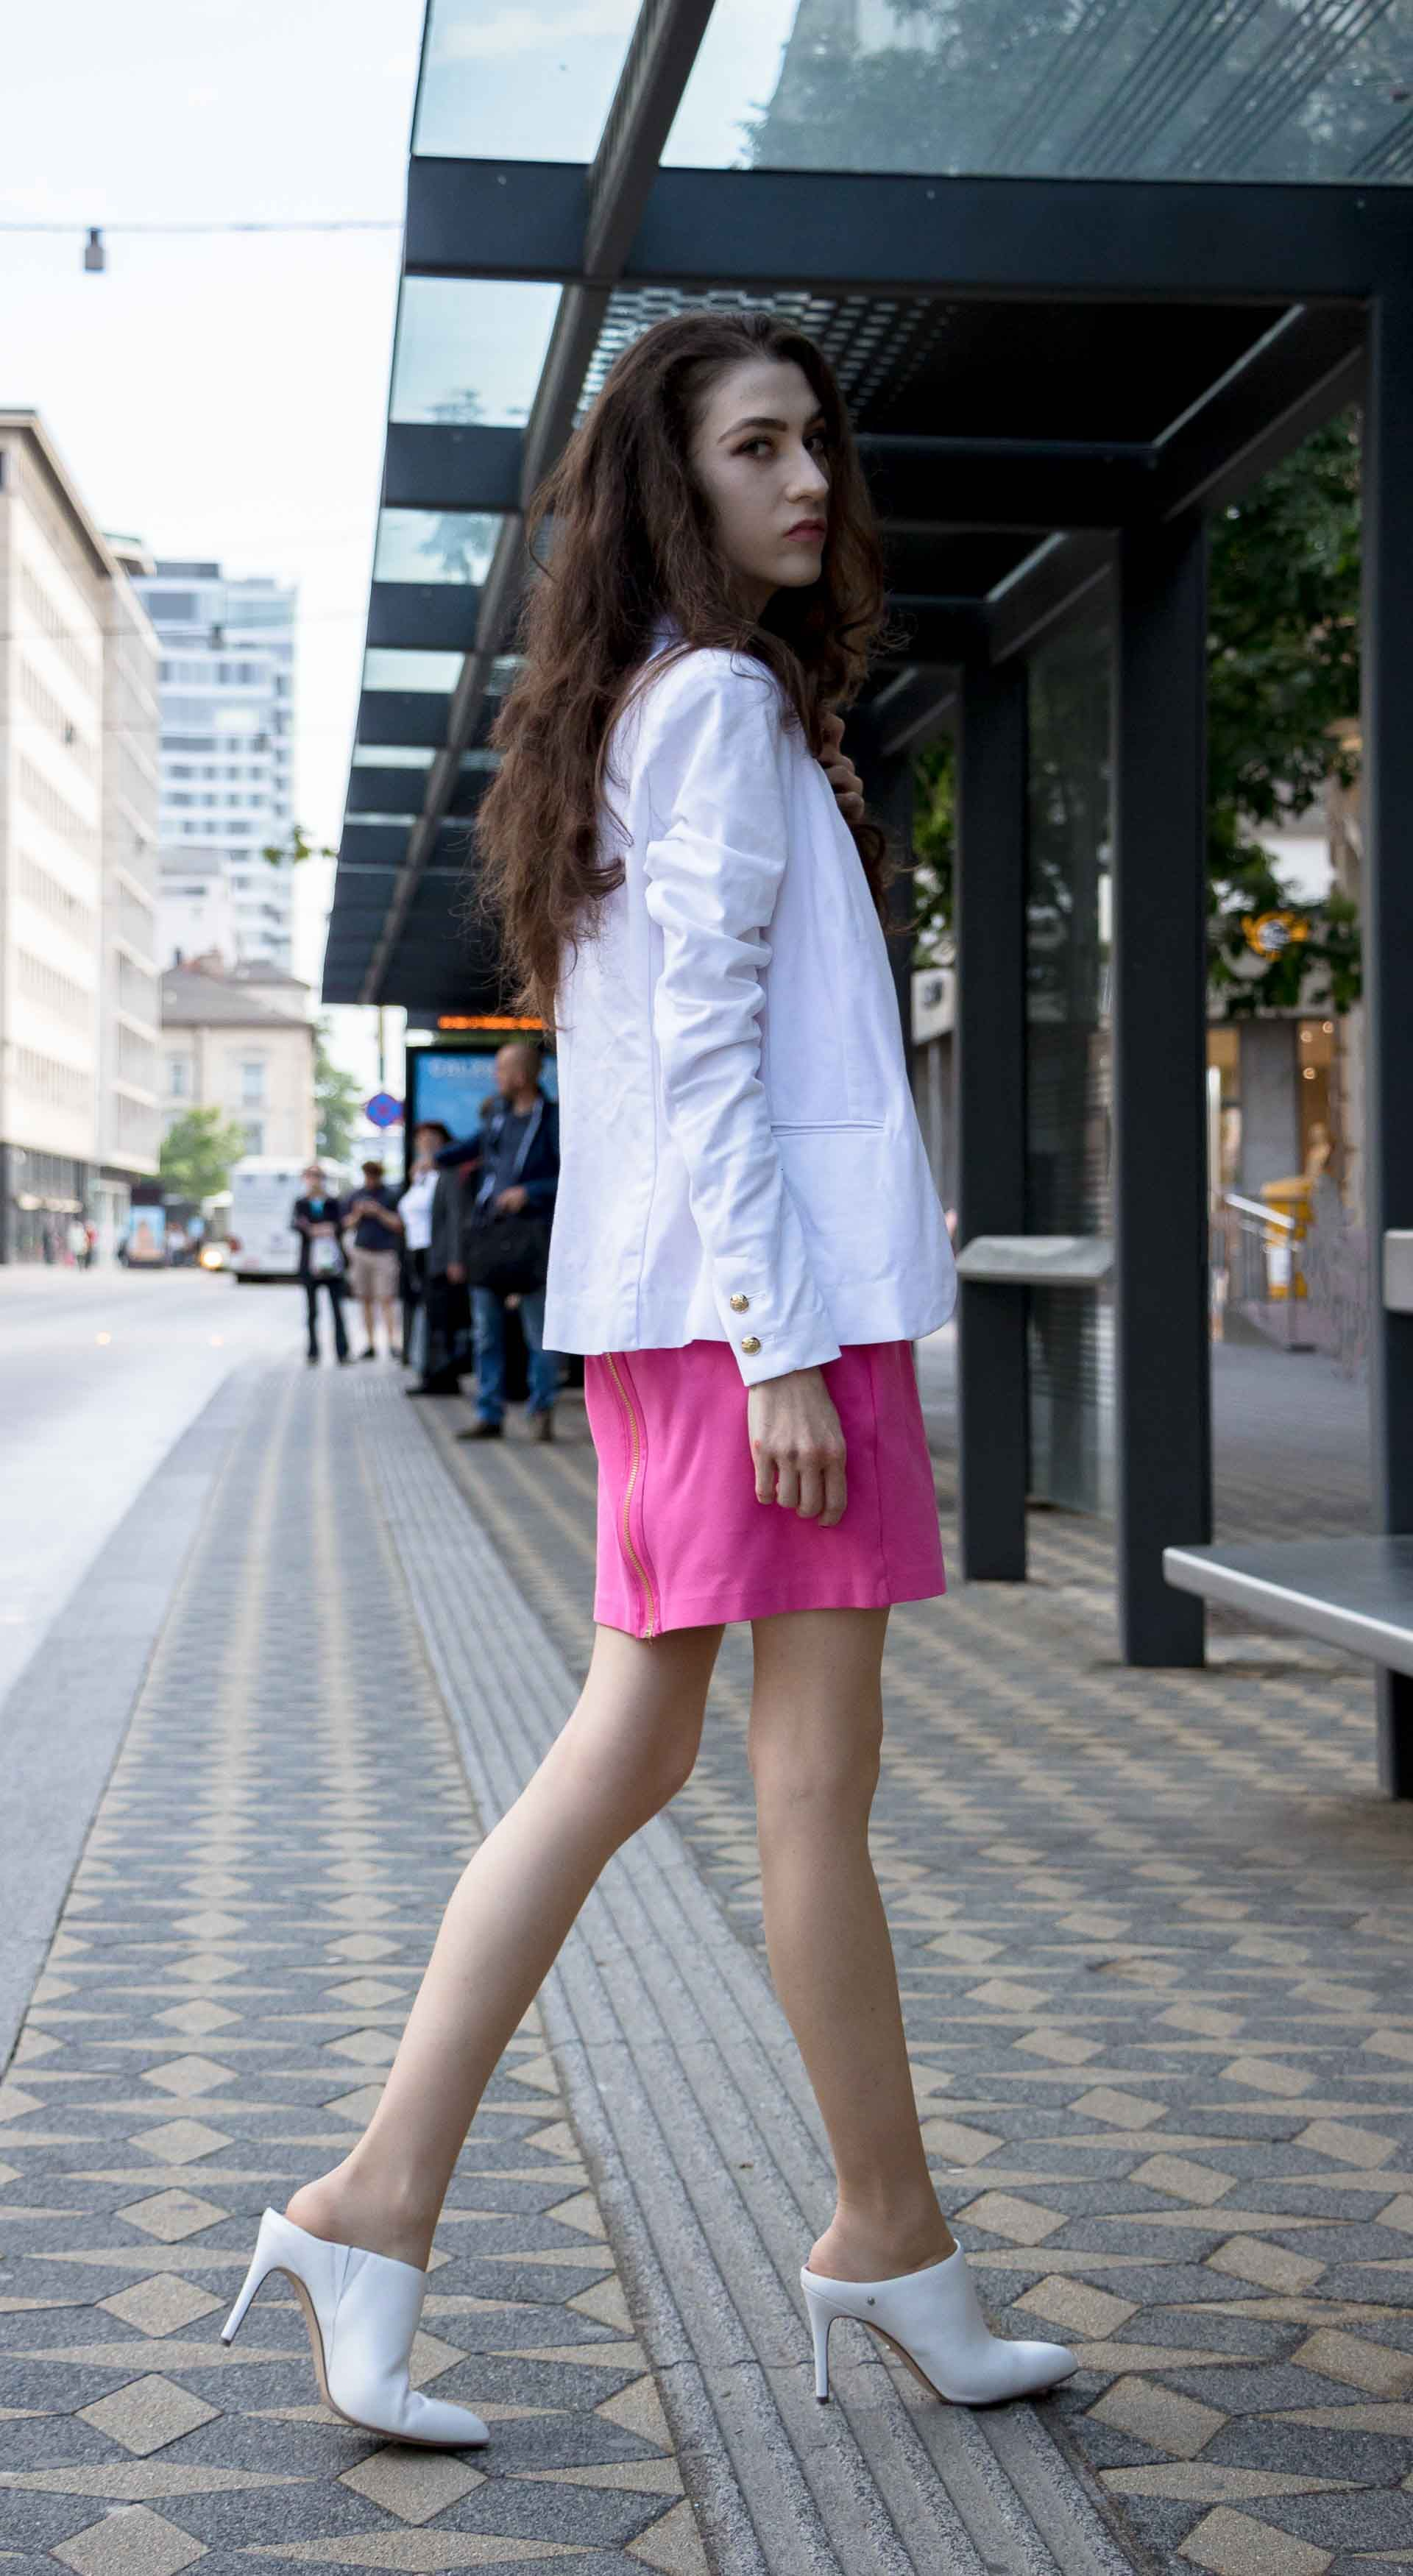 fcecfee4ffb5 Fashion Blogger Veronika Lipar of Brunette from Wall Street wearing summer  business casual outfit